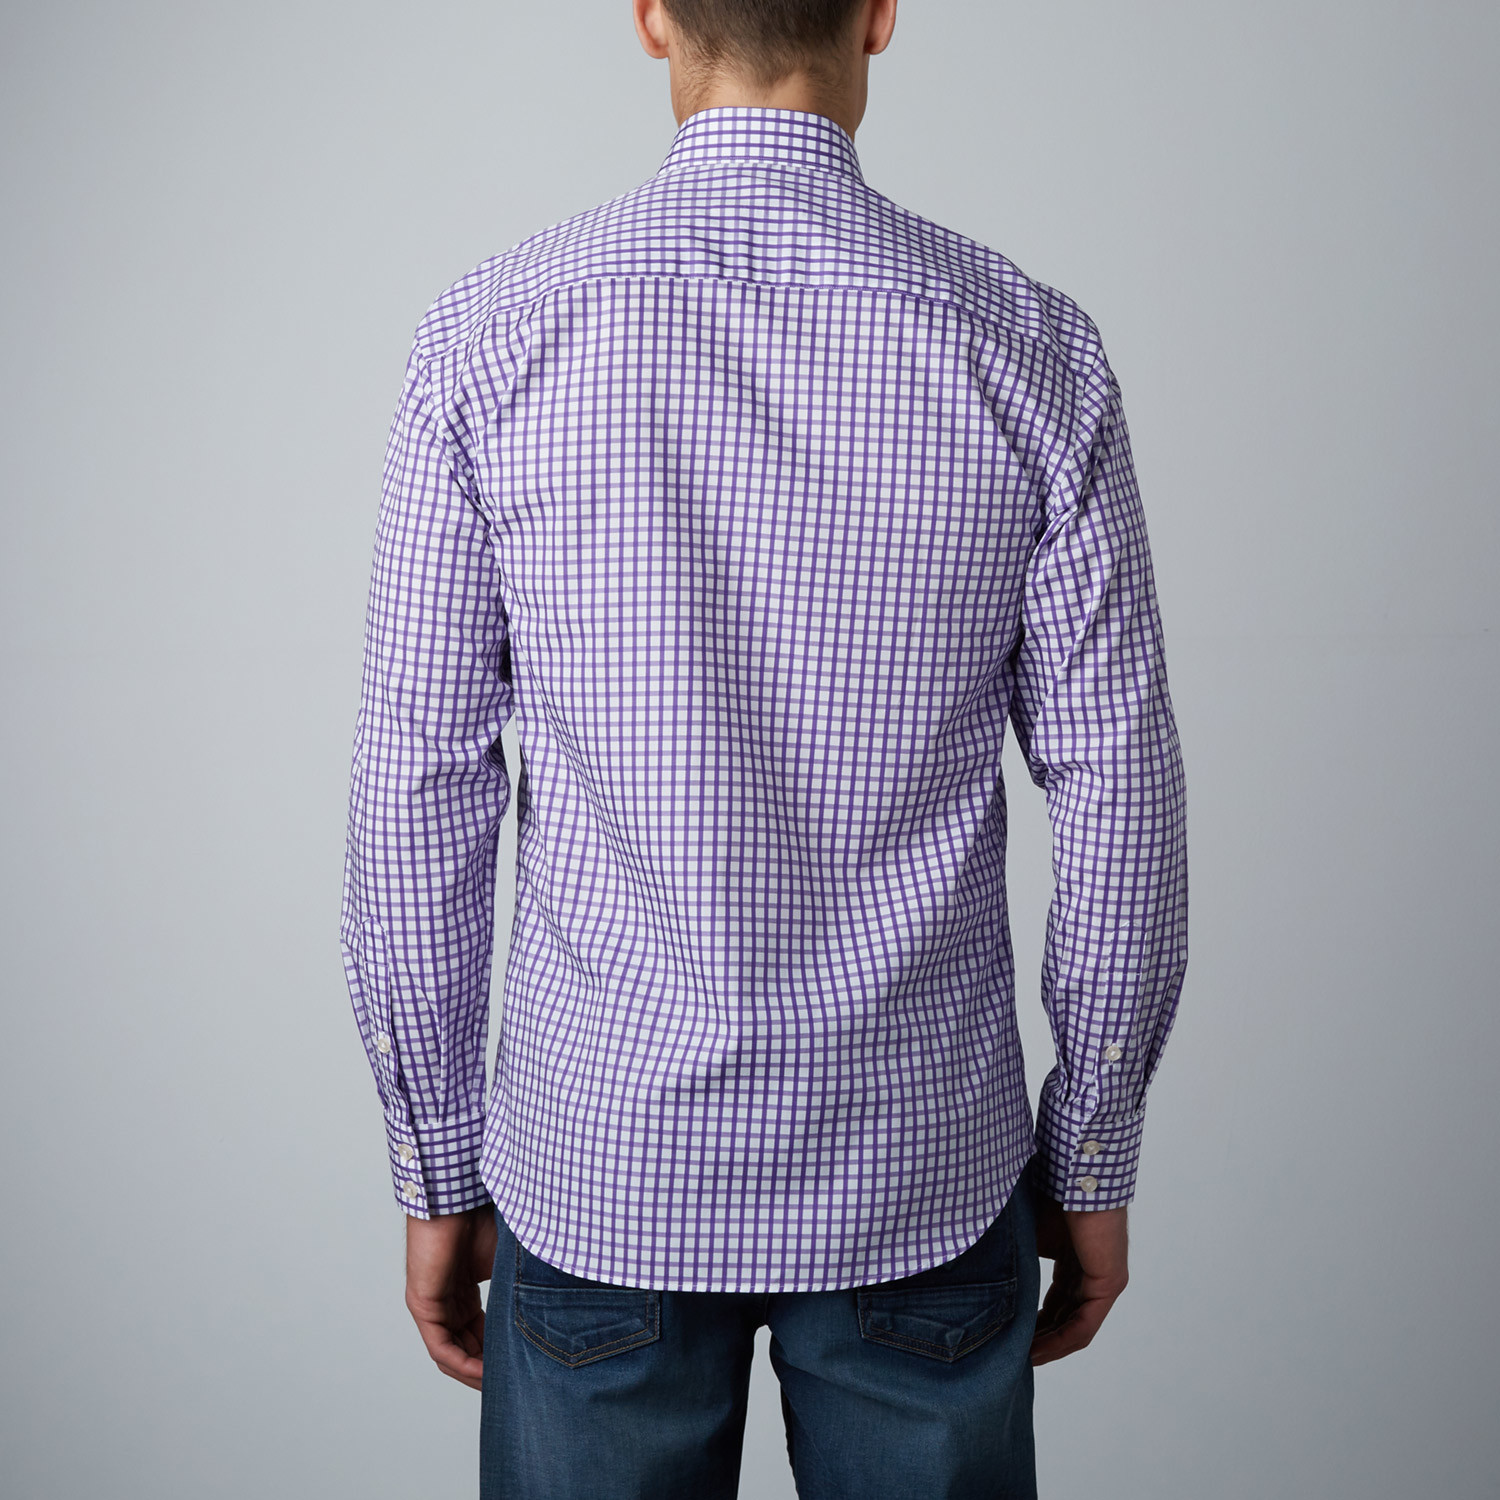 Donald gingham button up shirt purple white xs for Purple and white checked shirt